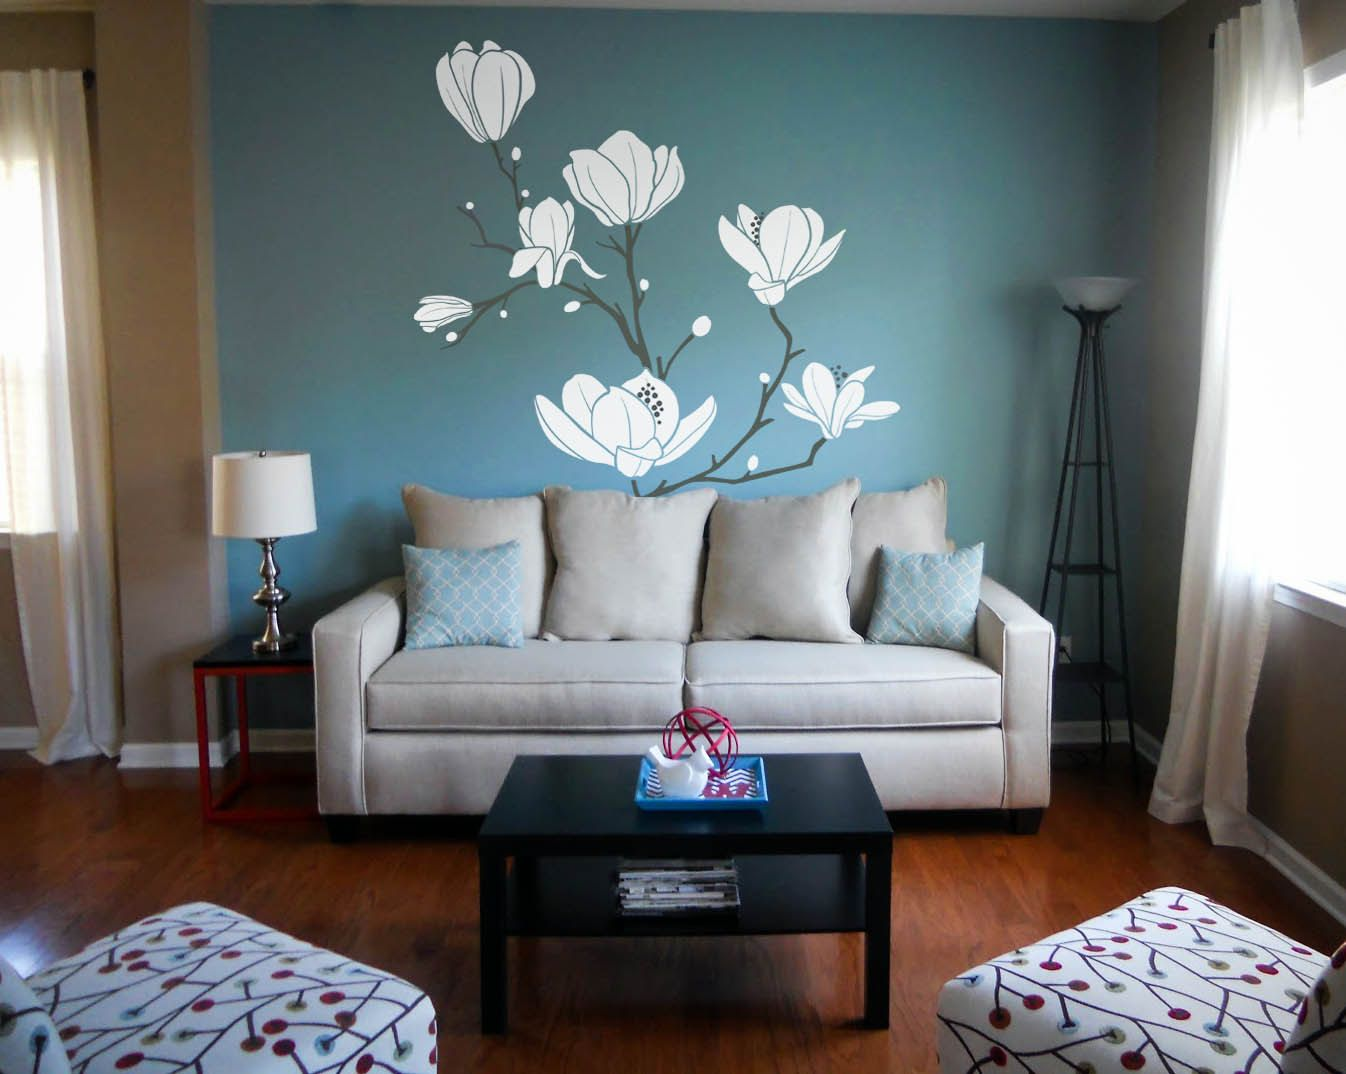 large magnolia tree branch floral flower wall decal vinyl sticker